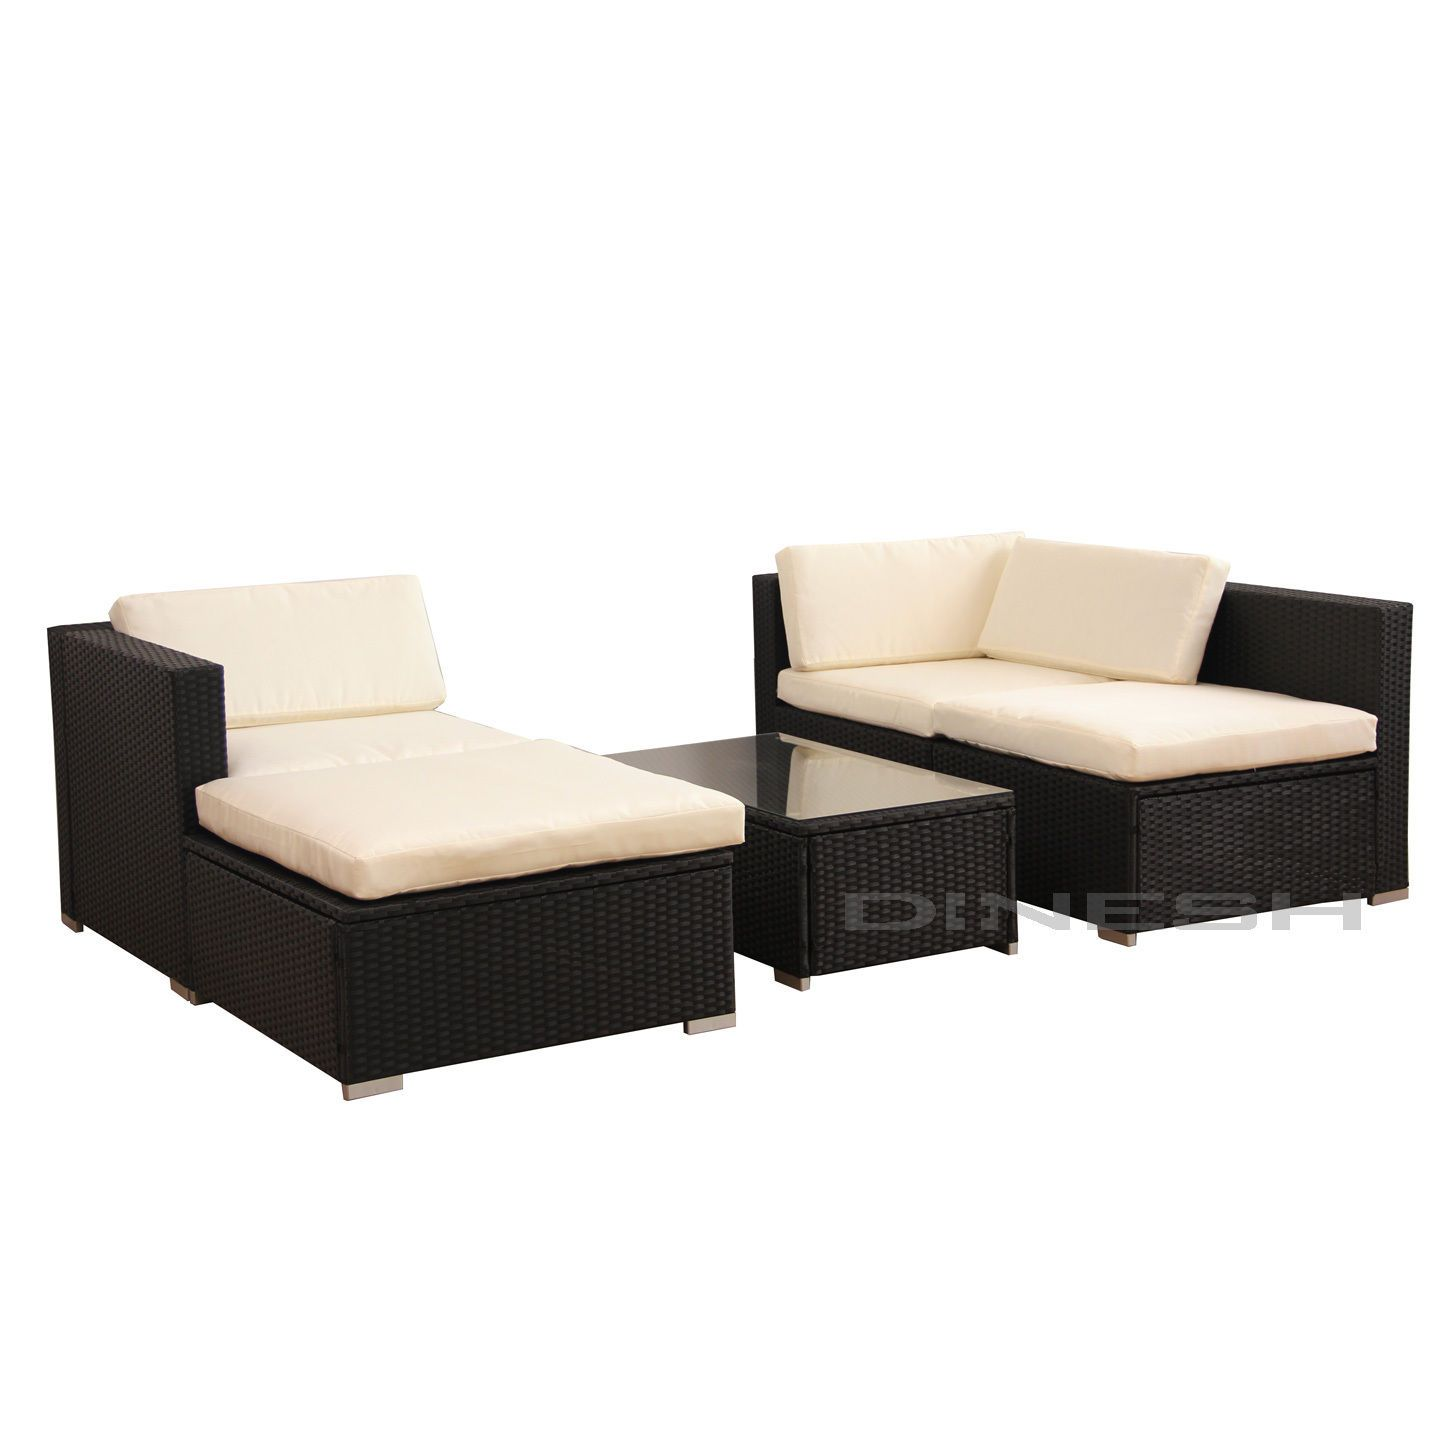 Details about Hawaii POLY RATTAN Lounge Schwarz Gartenset Sofa ...